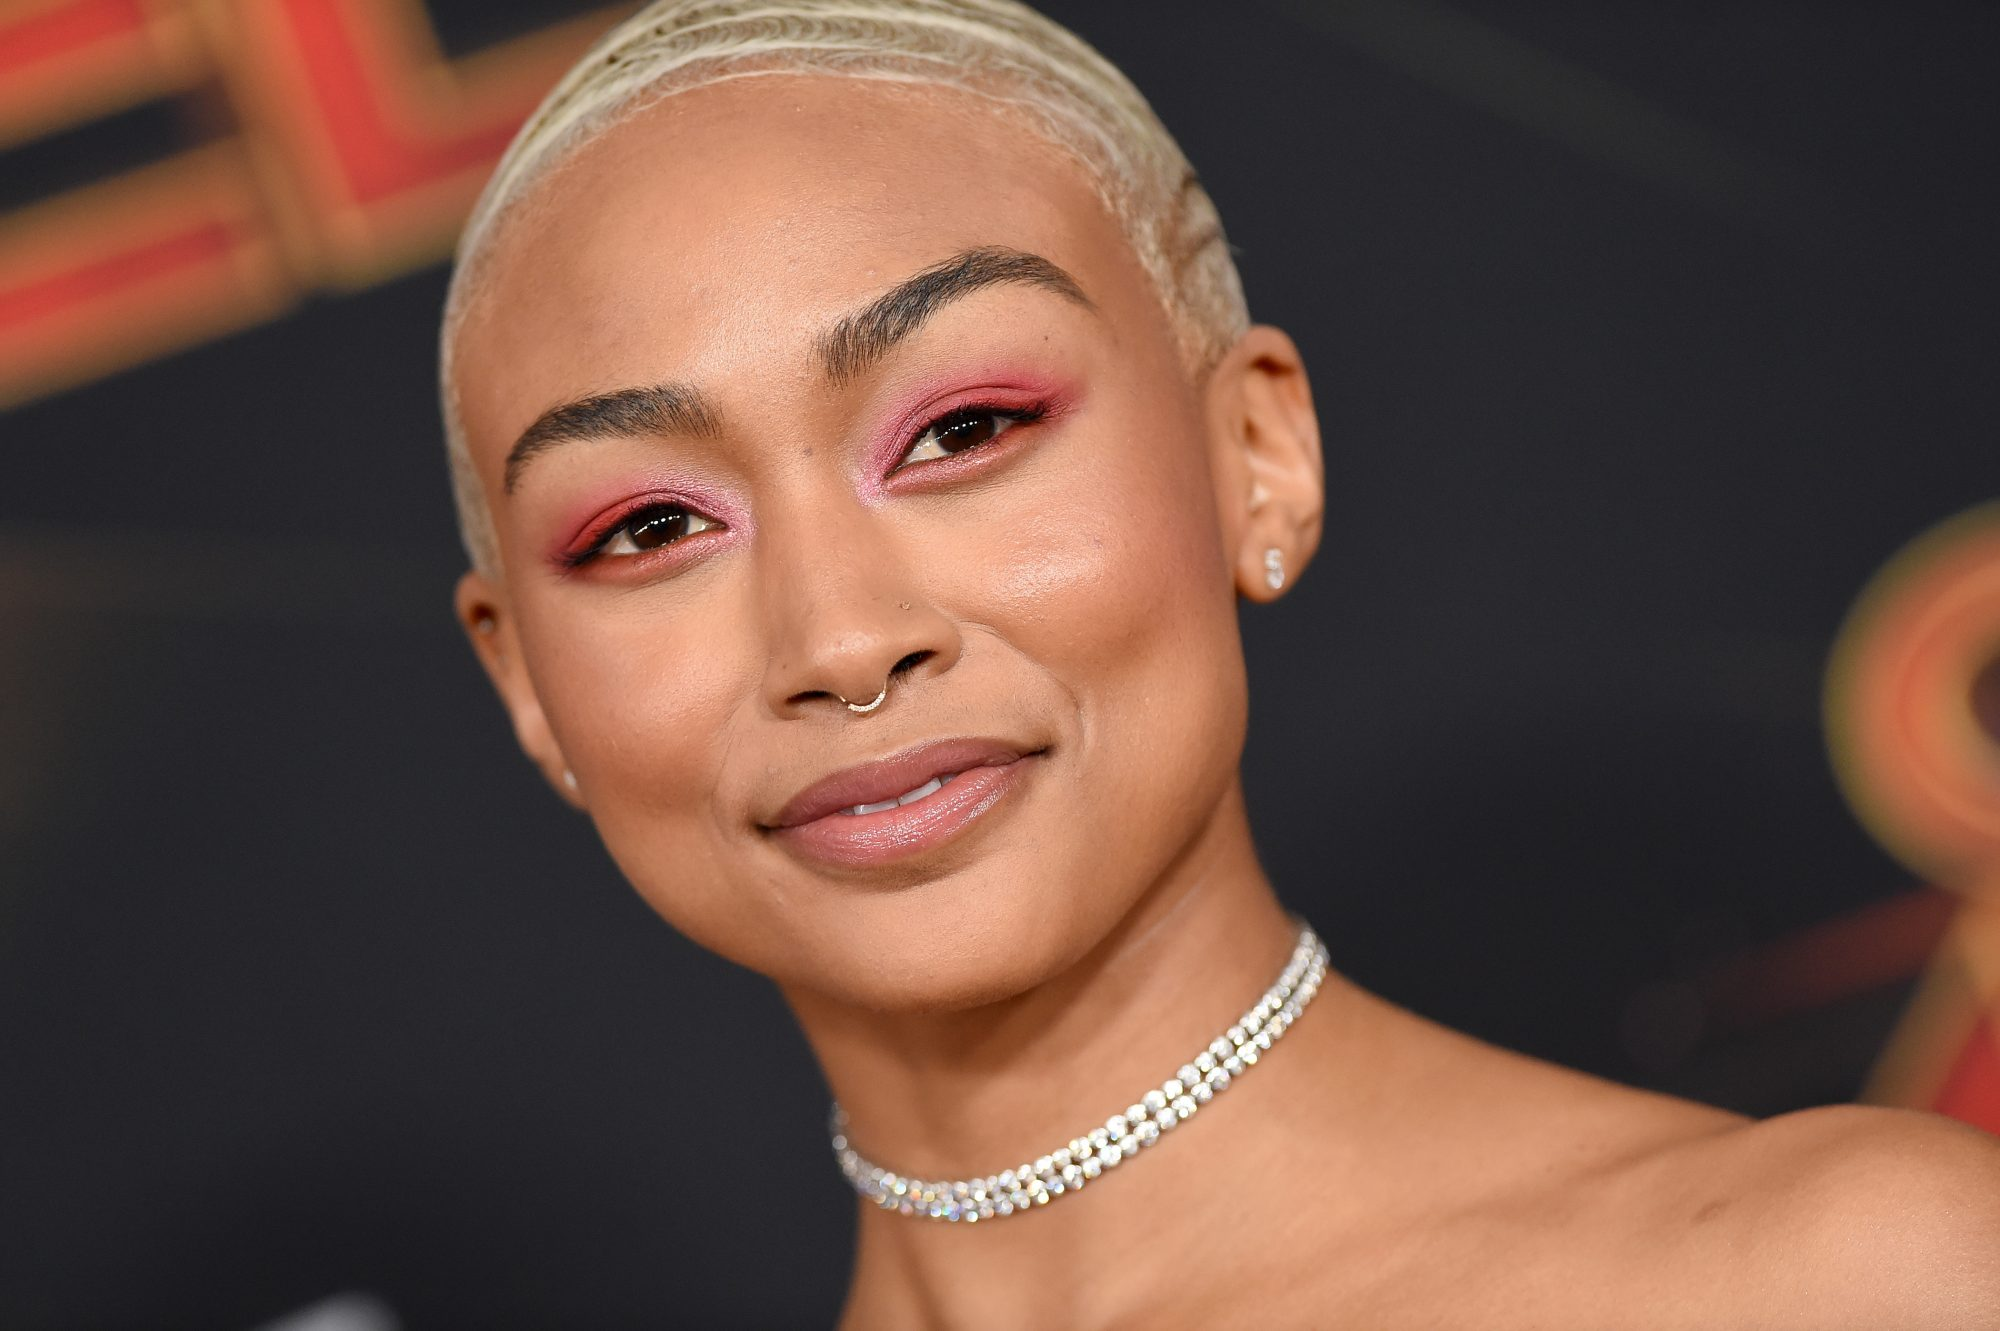 Tati Gabrielle Joins 'You' Season 3 Cast, Along With 12 Others